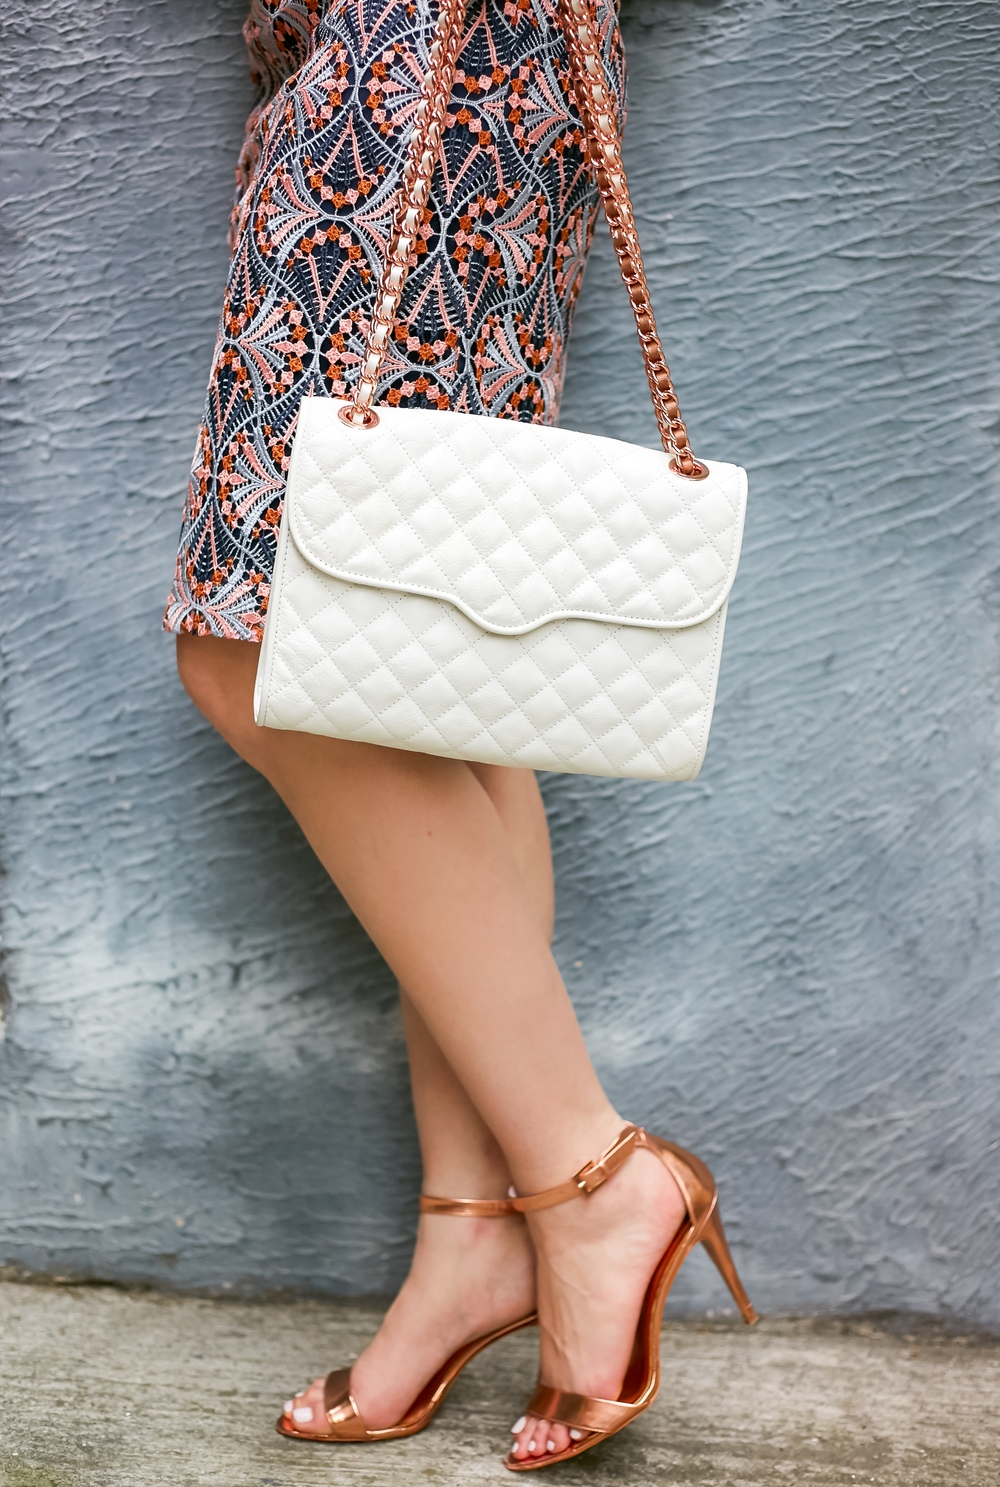 Rose gold and White Rebecca Minkoff Bag, Anthropologie skirt, Ted Baker Heels